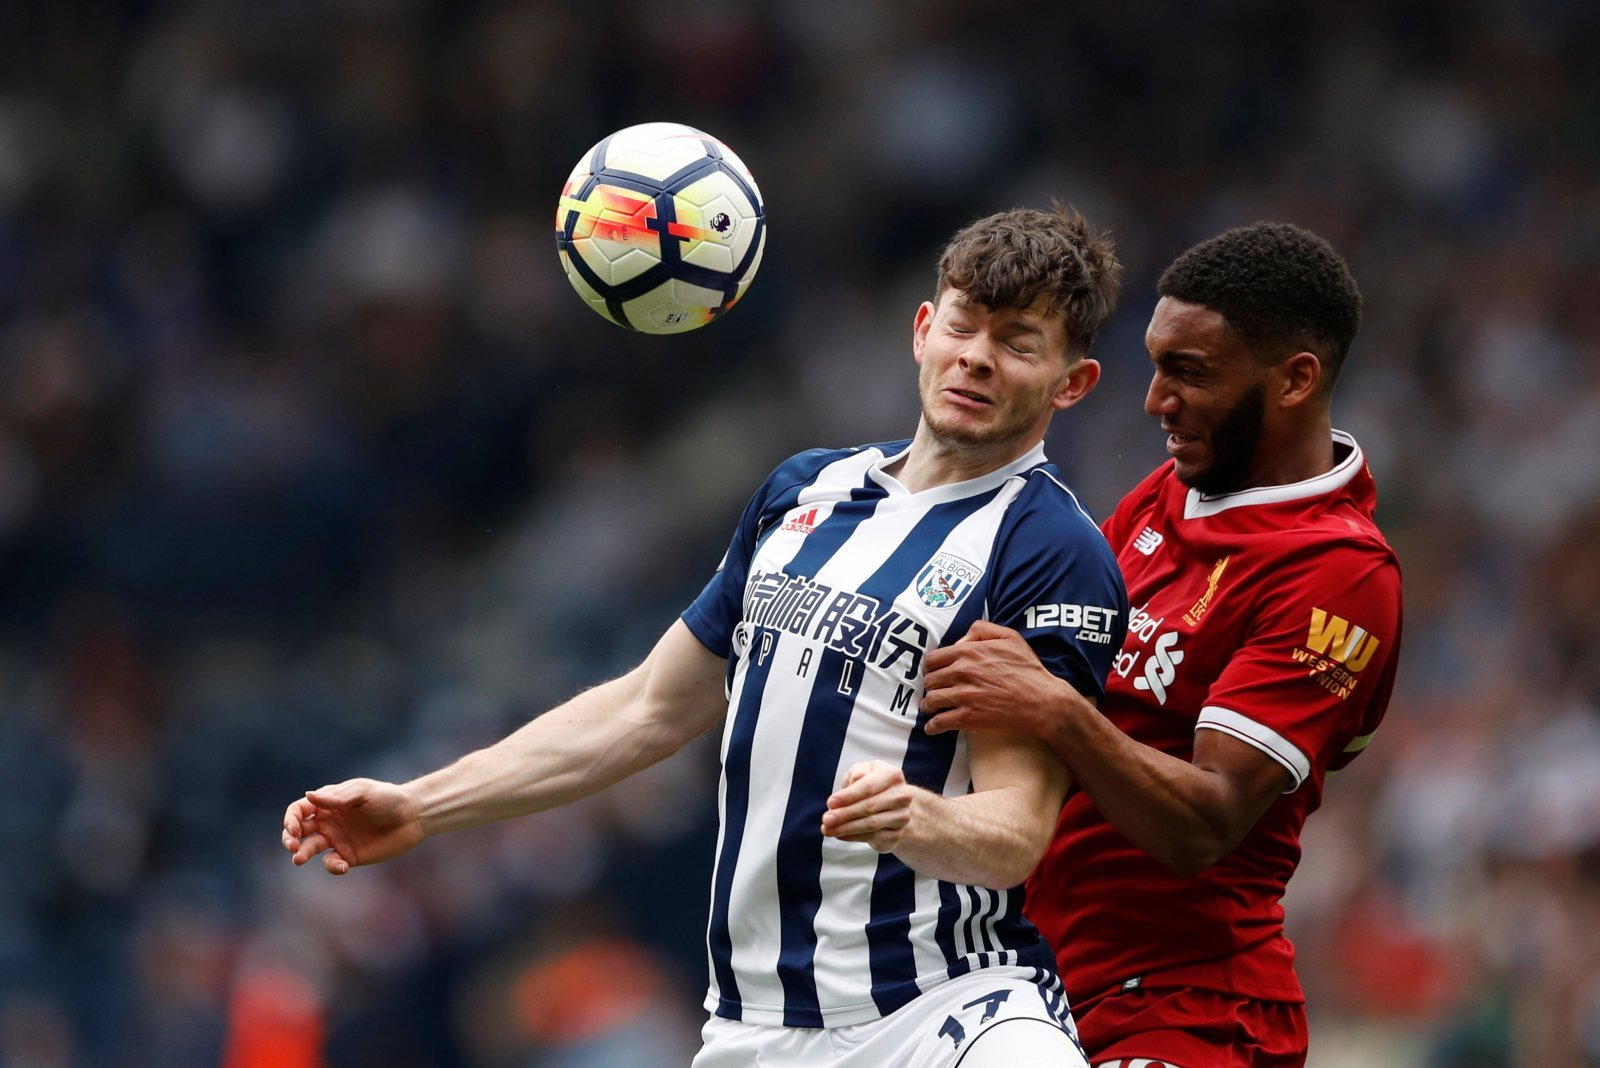 Opinion: A return to Nottingham Forest could resurrect Oliver Burke's career